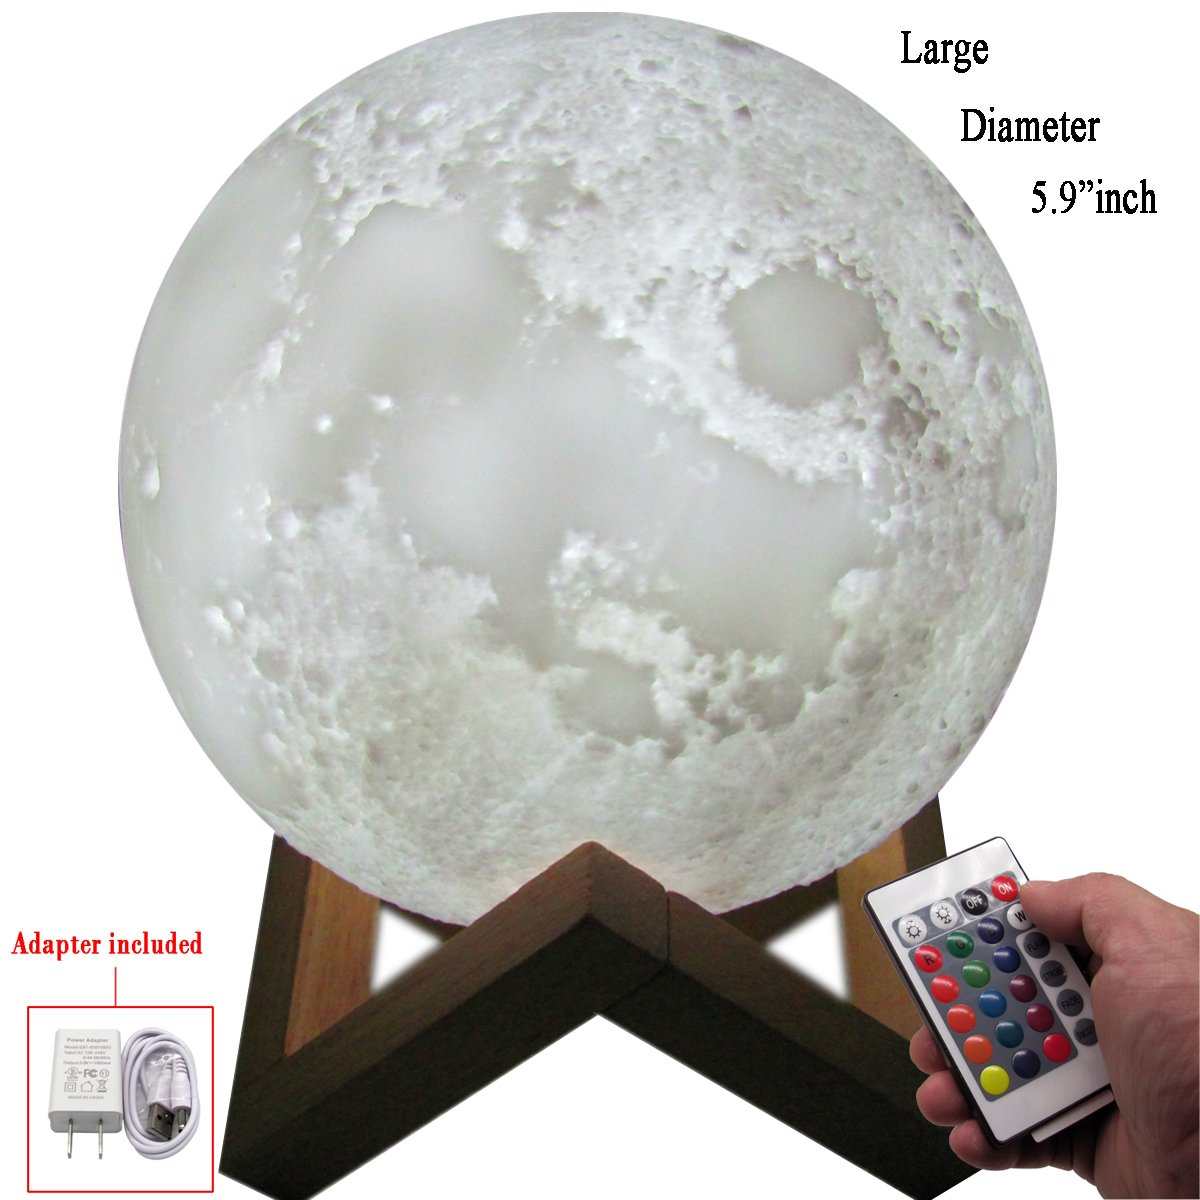 [Newest Design] Moon Lamp,16 Colors,3D LED,Remote Control & Dimmable Touch Sensor,Night Light for Kids(Diameter-5.9 inch)